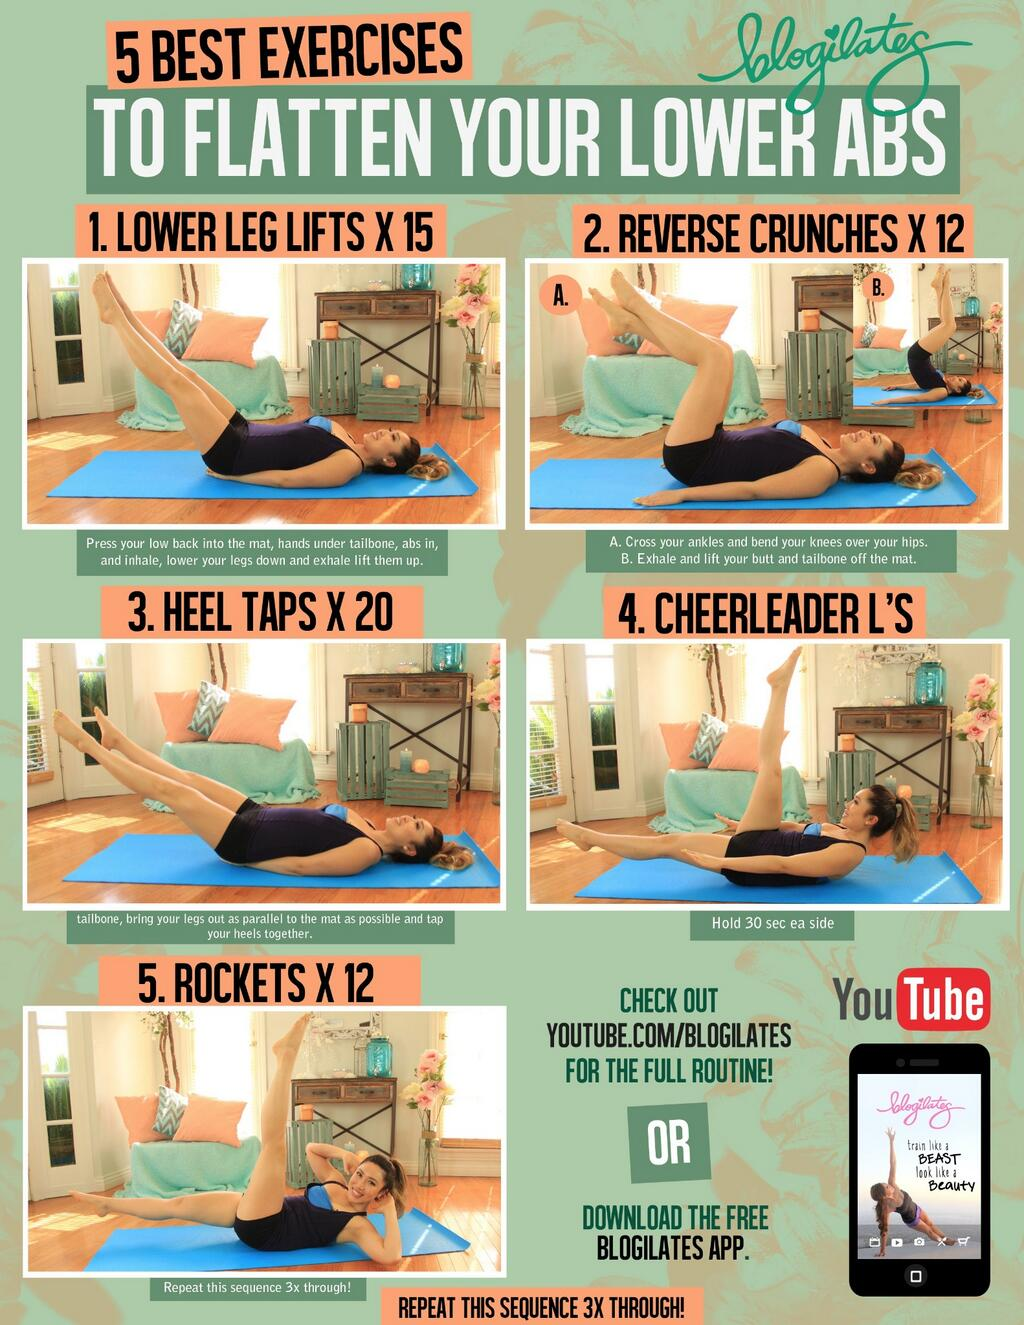 5-best-exercises-to-flatten-your-lower-abs